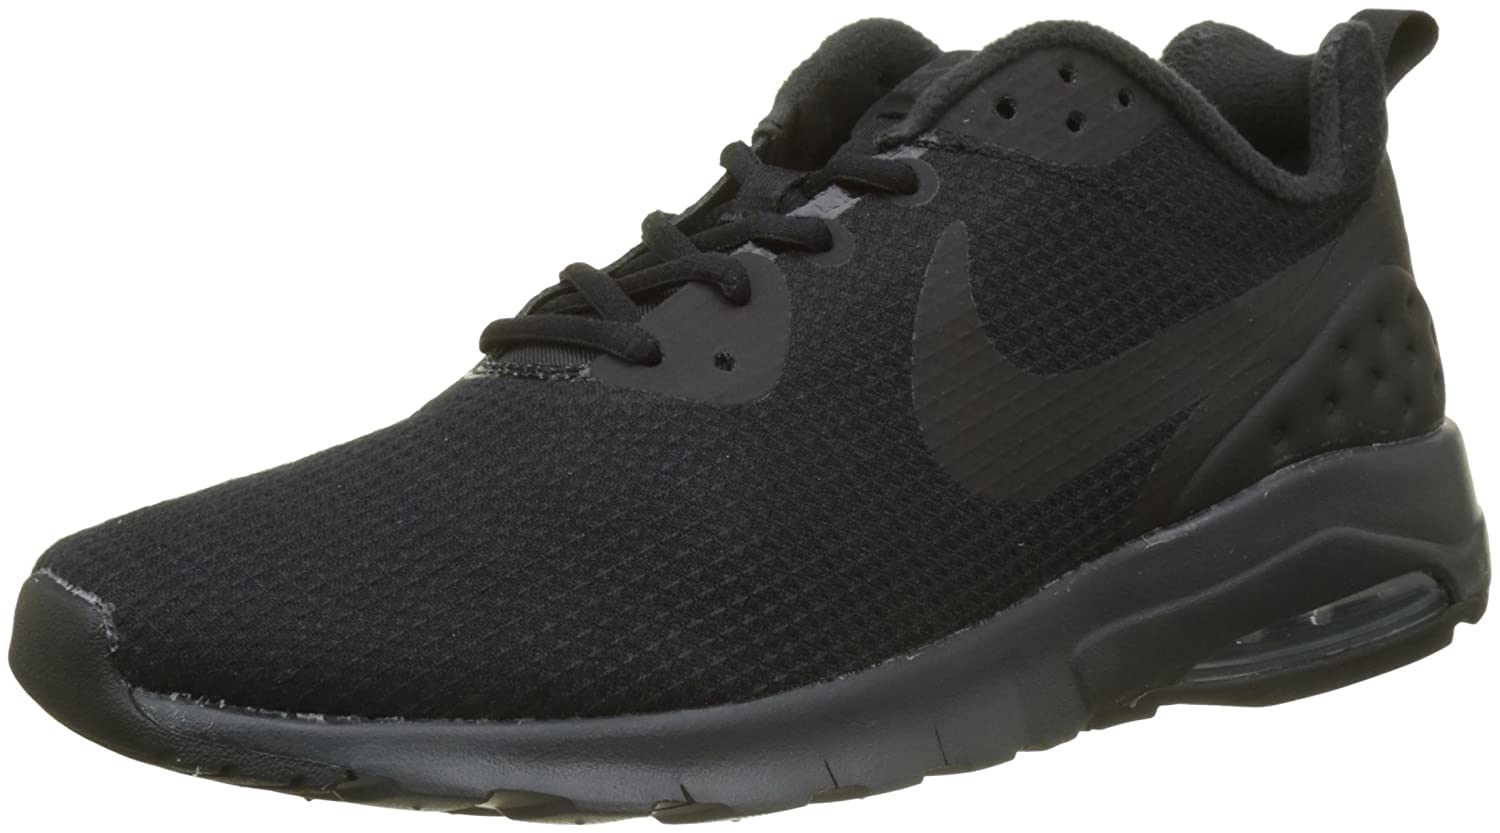 NIKE Men's Air Max Motion Low Cross Trainer B06Y151BY4 9 D(M) US|Black/Black/Anthracite